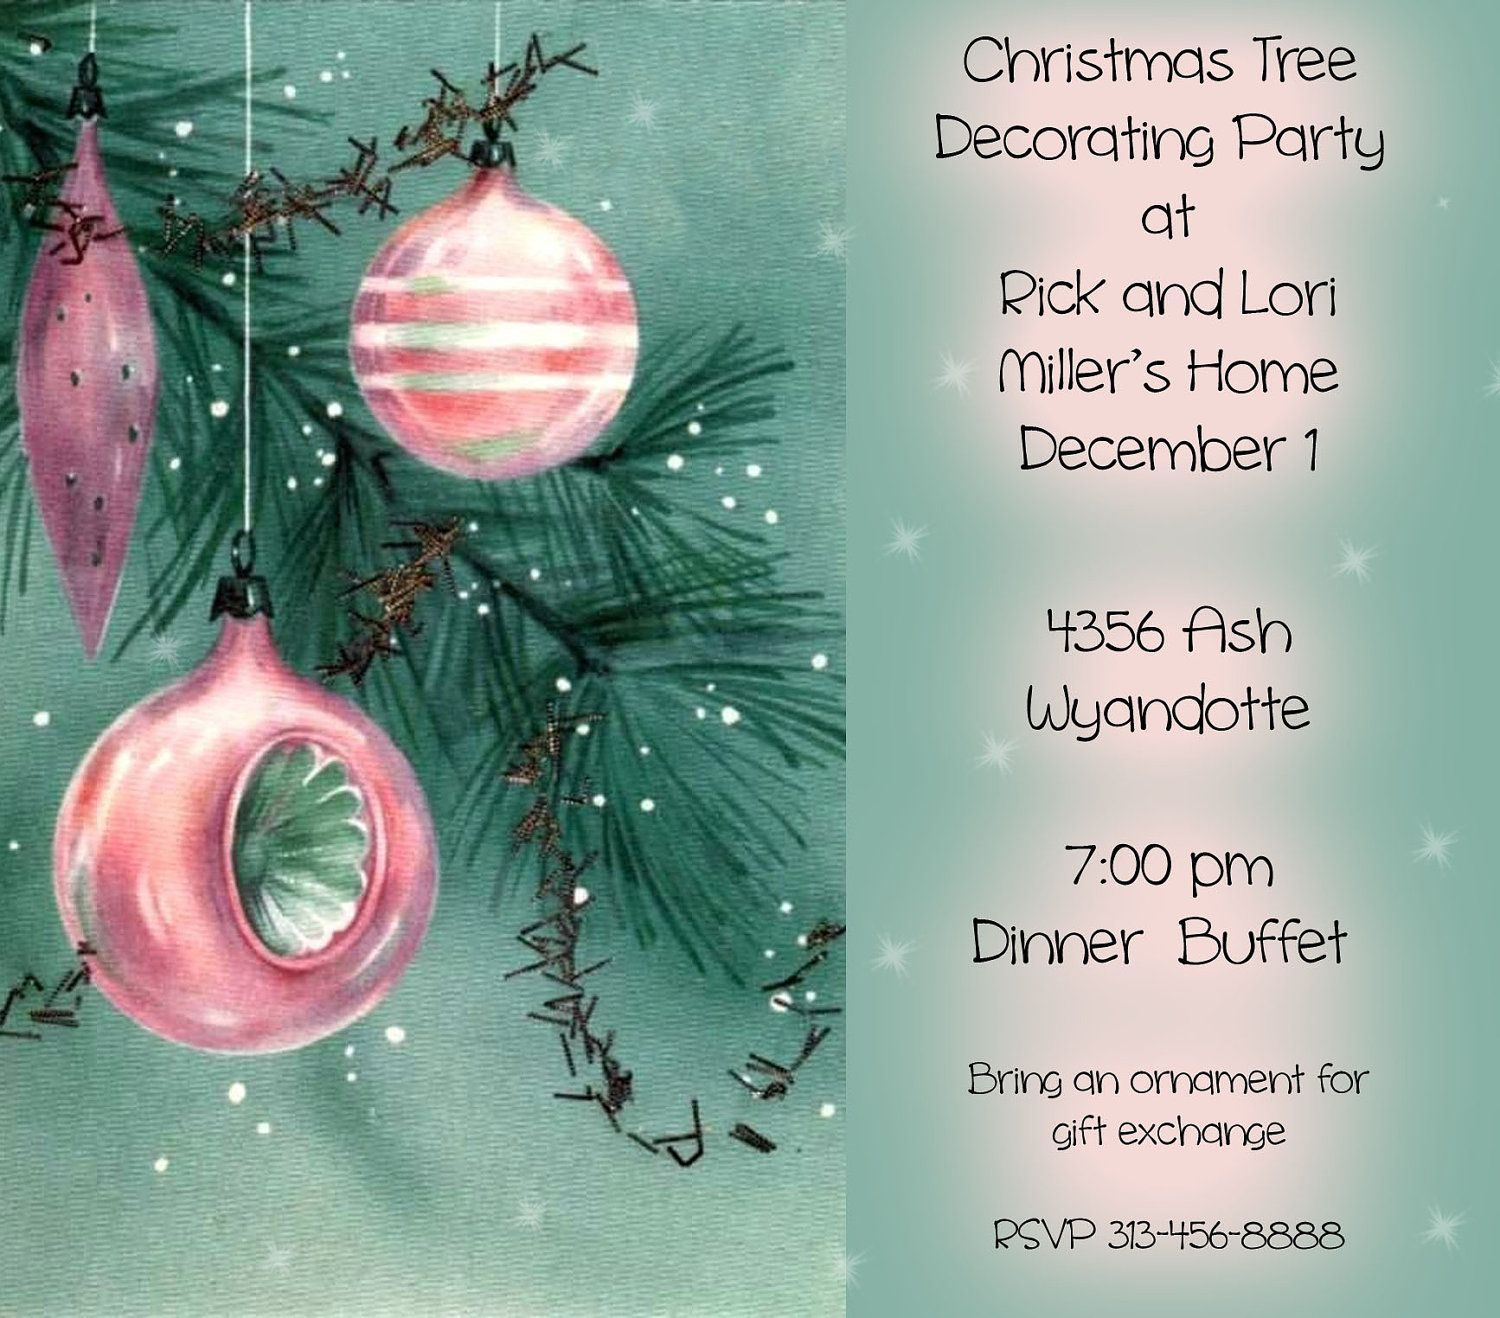 Christmas tree decorating party invitation that you print